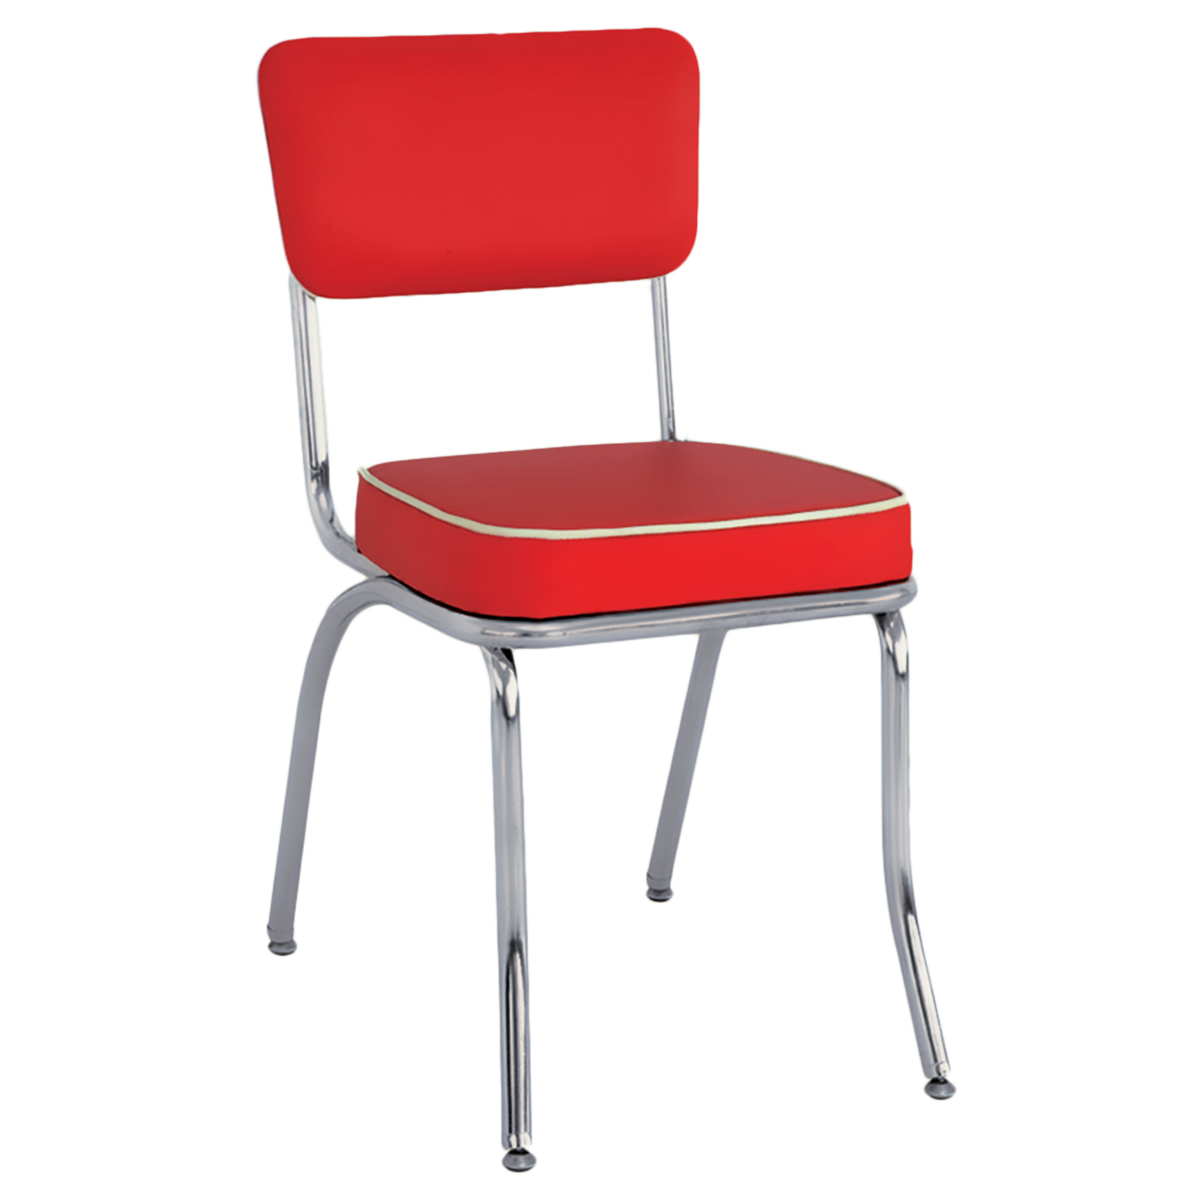 Metal Retro Upholstered Chrome Chairs